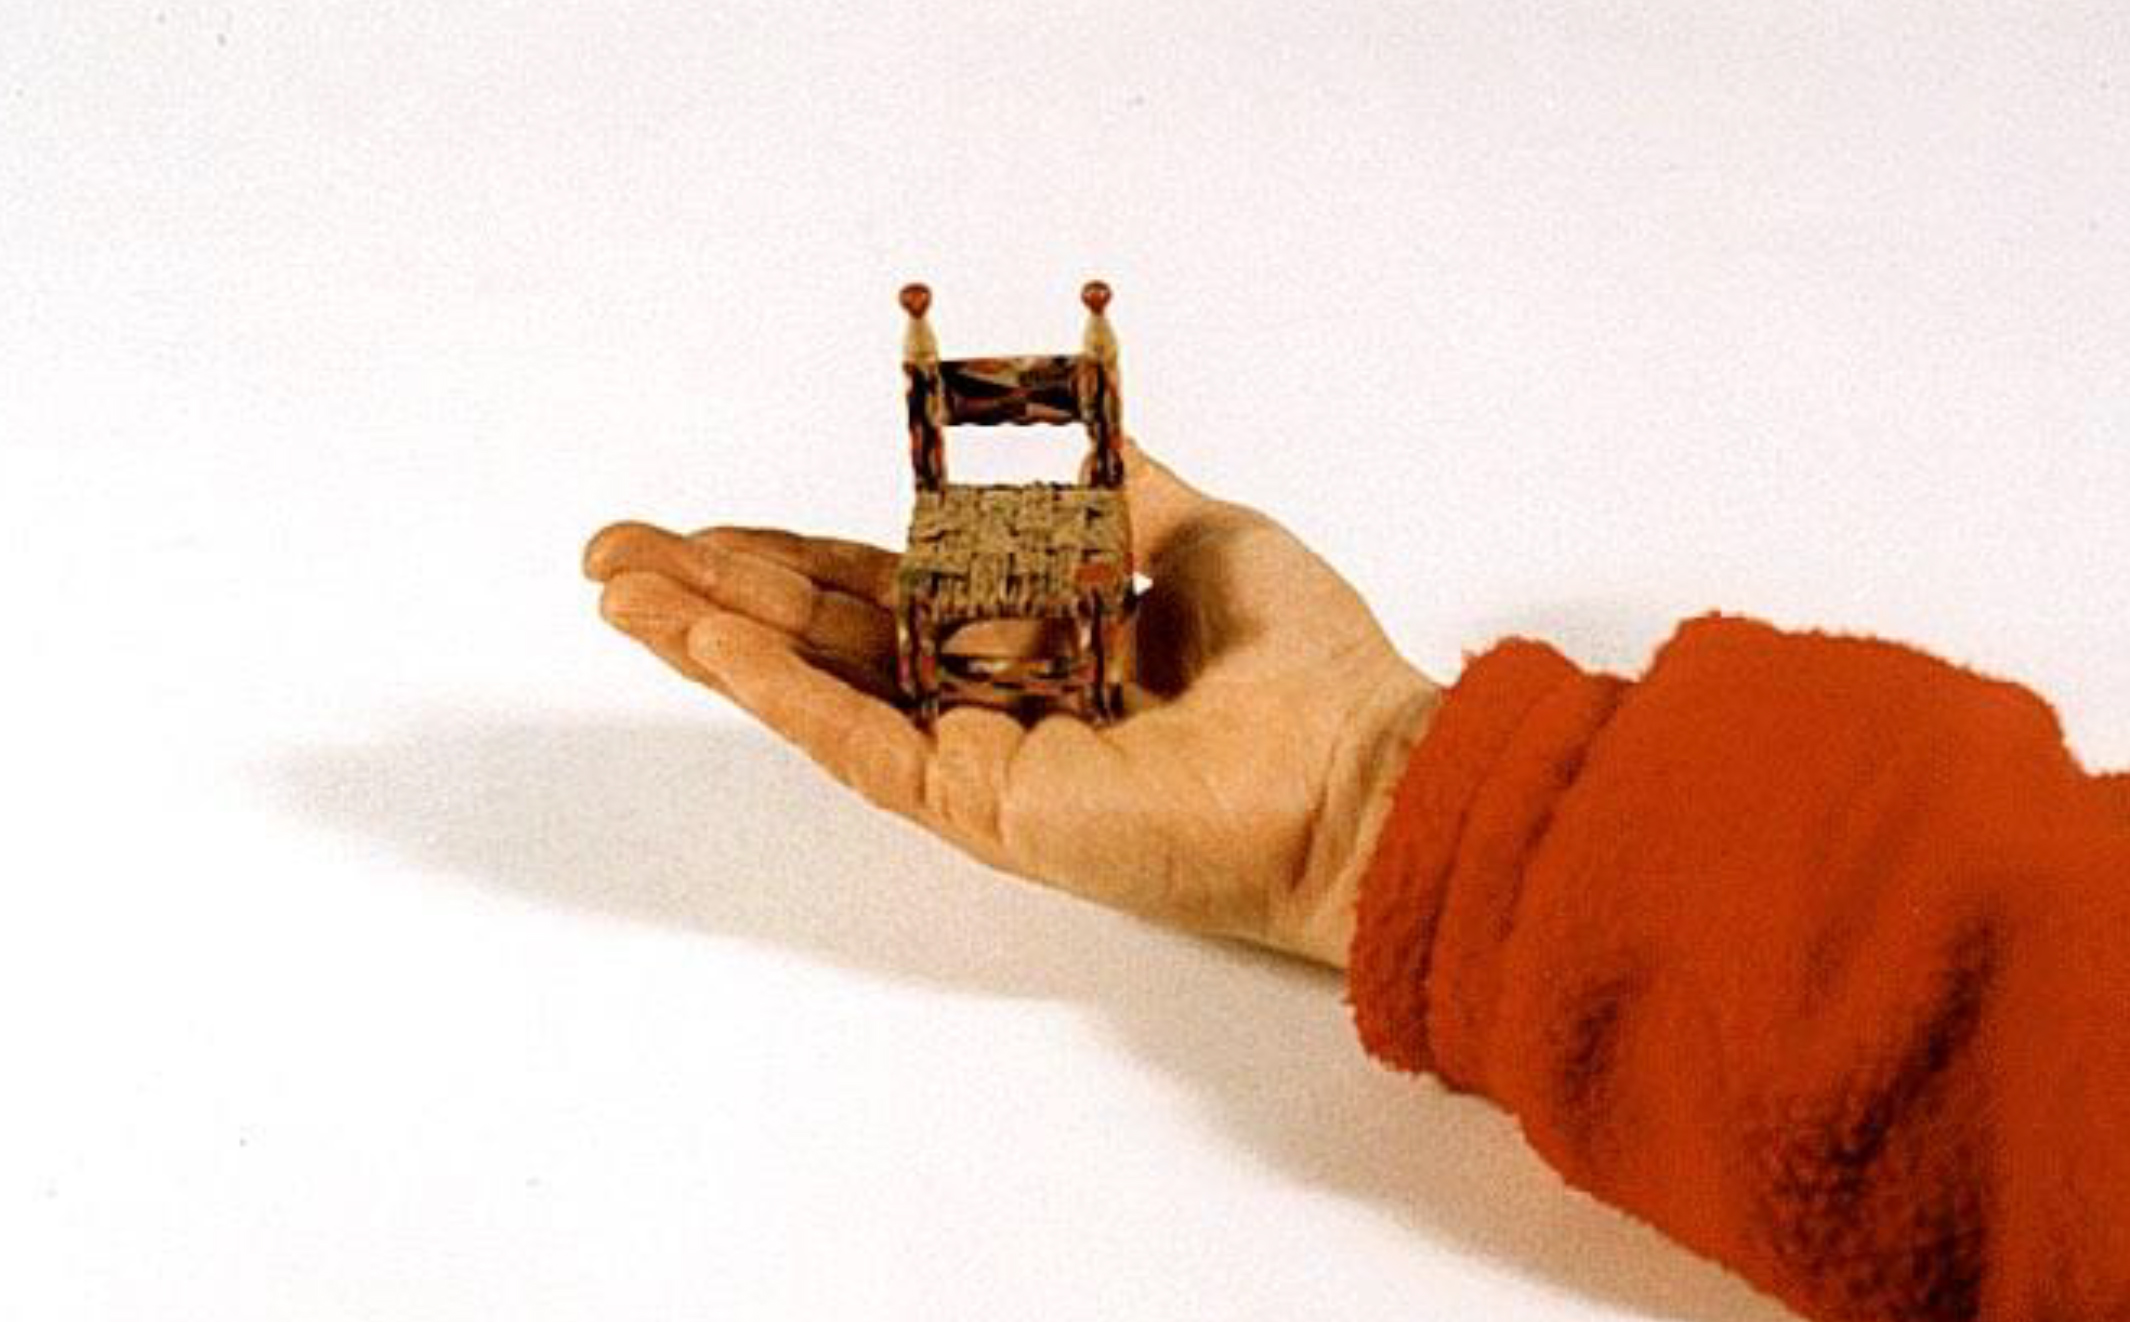 - This tiny toy chair was the inspiration for a collection of over one hundred chair sculptures.